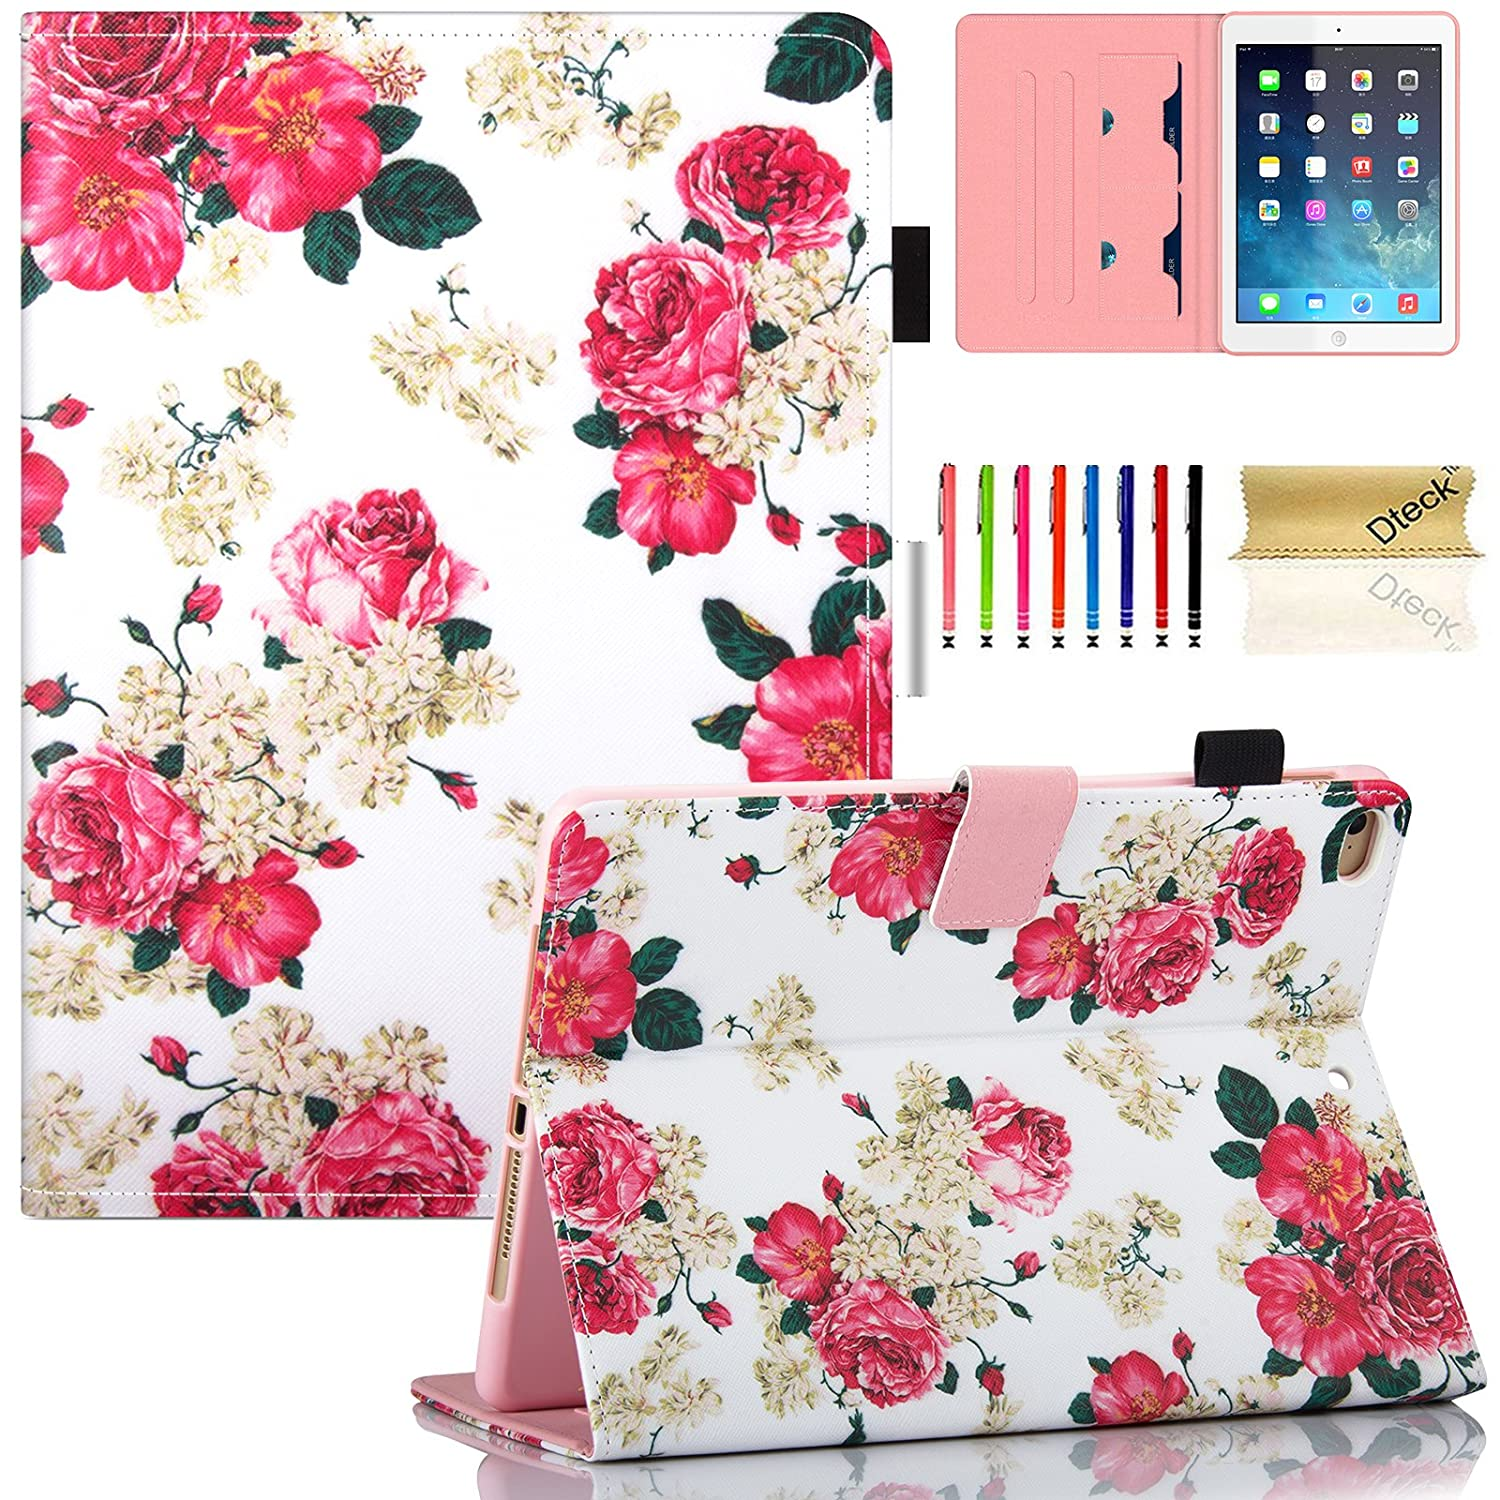 iPad Air 2 Case with Stylus Pen, iPad 6th Case, Dteck Pretty Pink Floral Flip Folio Smart Stand Case with [Auto Wake/Sleep Feature] Synthetic Leather Wallet Cover for Apple iPad Air 2 9.7 Inch Tablet-Flowers